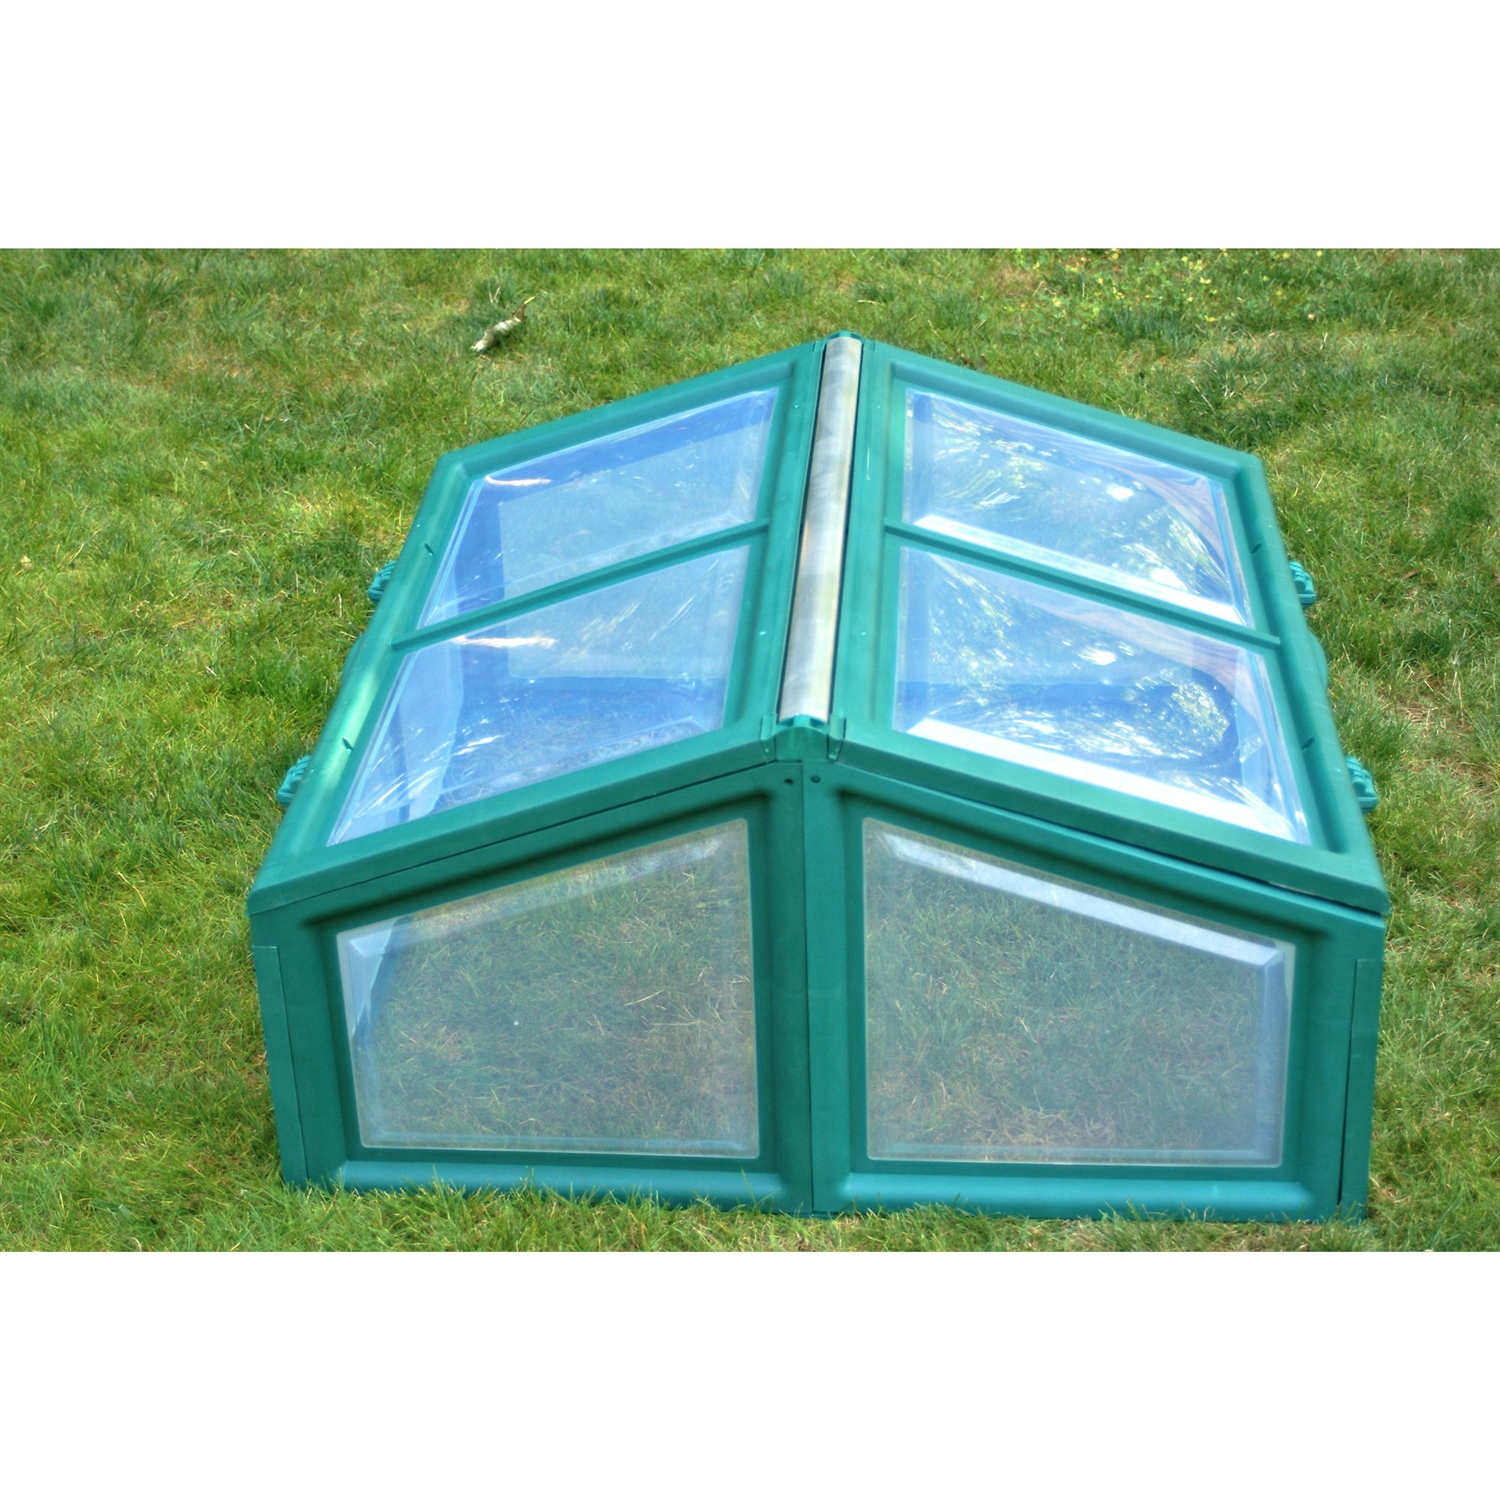 Polycarbonate Cold Frame Mini Greenhouse - Easy to Assemble, GPCF8901 :  This Polycarbonate Cold Frame Mini Greenhouse - Easy to Assemble would be a great addition to your home. It has a 2 year warranty and a cold frame. Genesis collection.